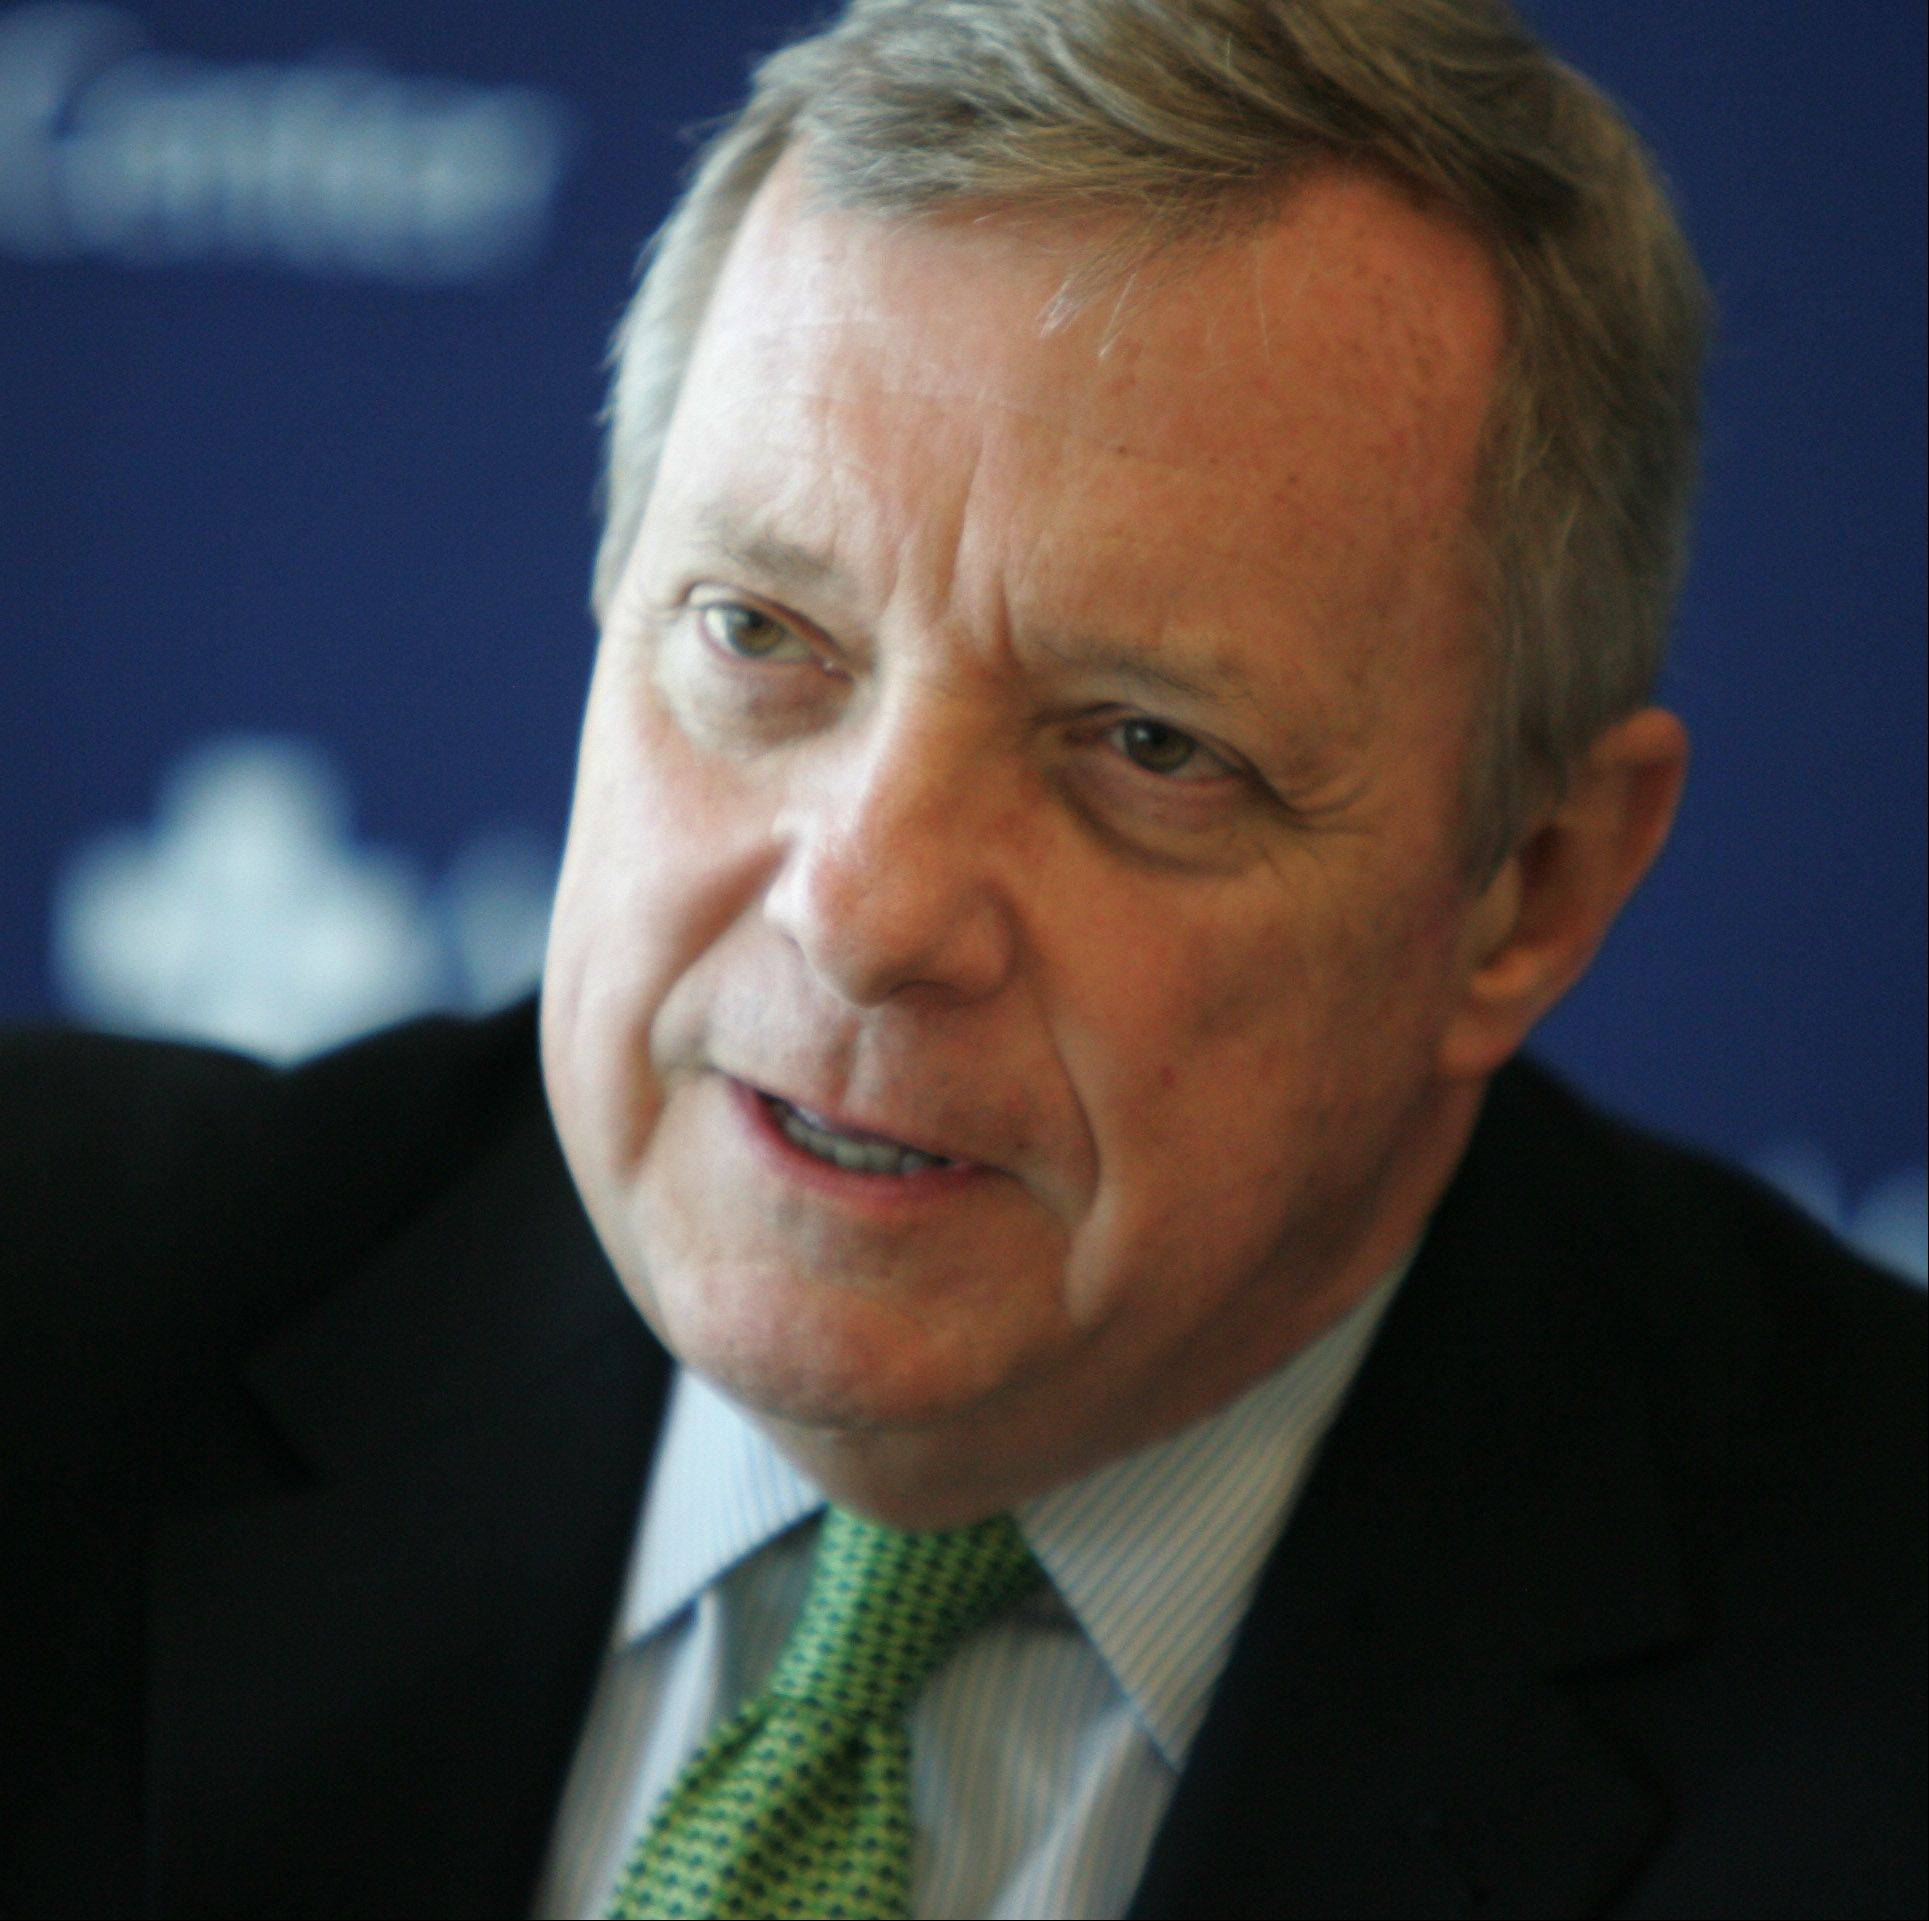 U.S. Sen. Dick Durbin, a Springfield Democrat, is the new chairman of the Senate's Defense Appropriations Subcommittee.